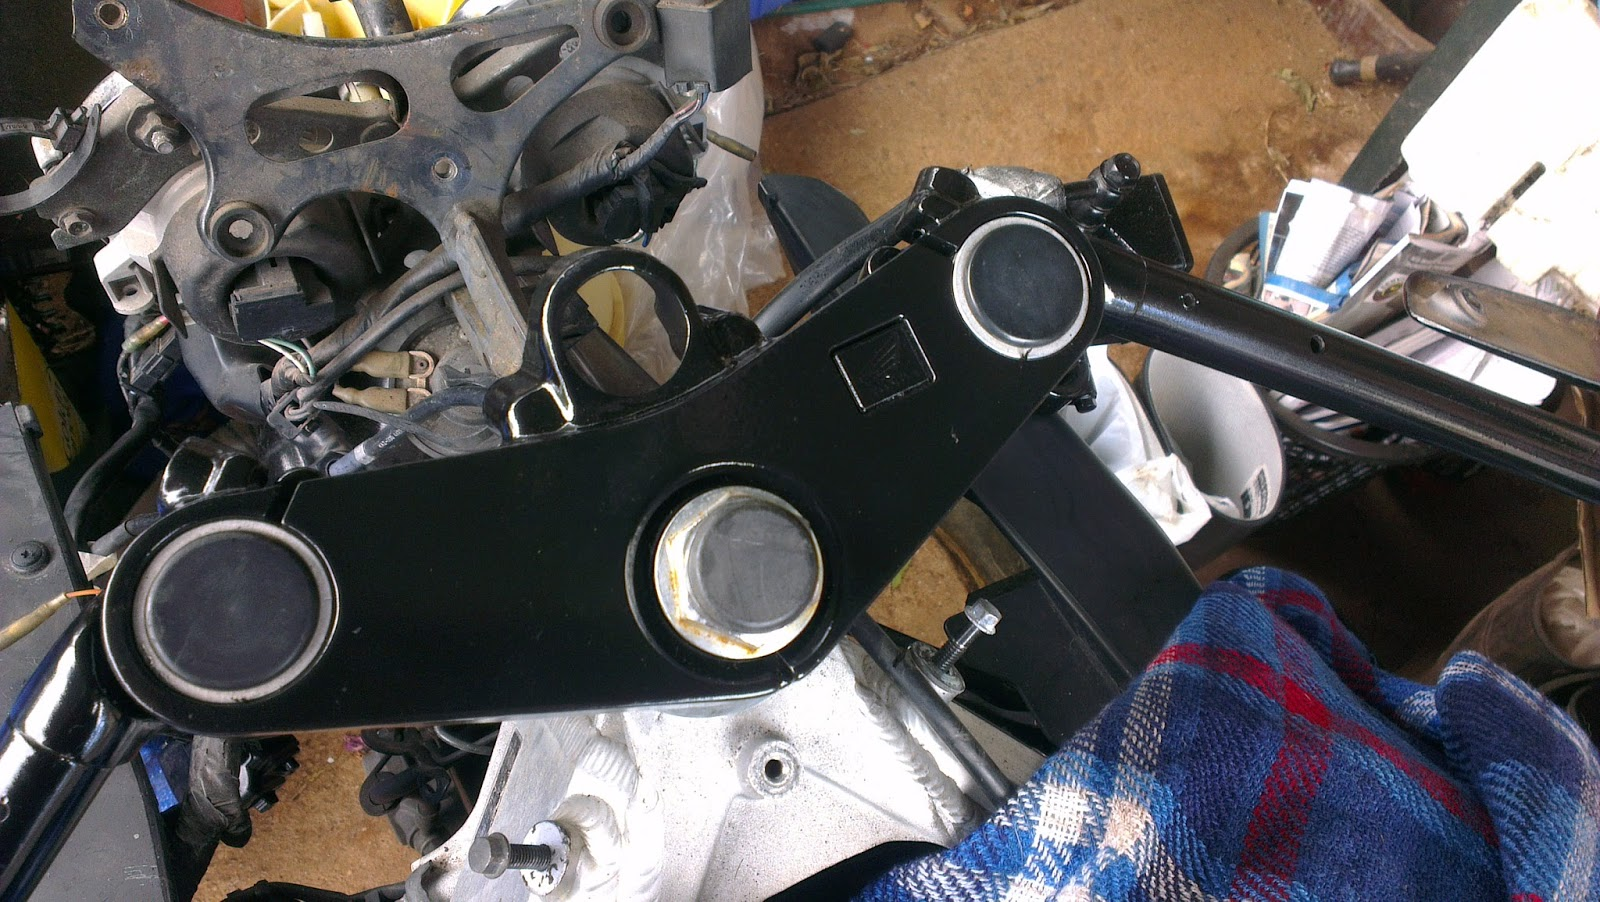 MC22 CBR250RR - THE LEGEND LIVES ON: TRIPPLE CLAMP AND CLIP